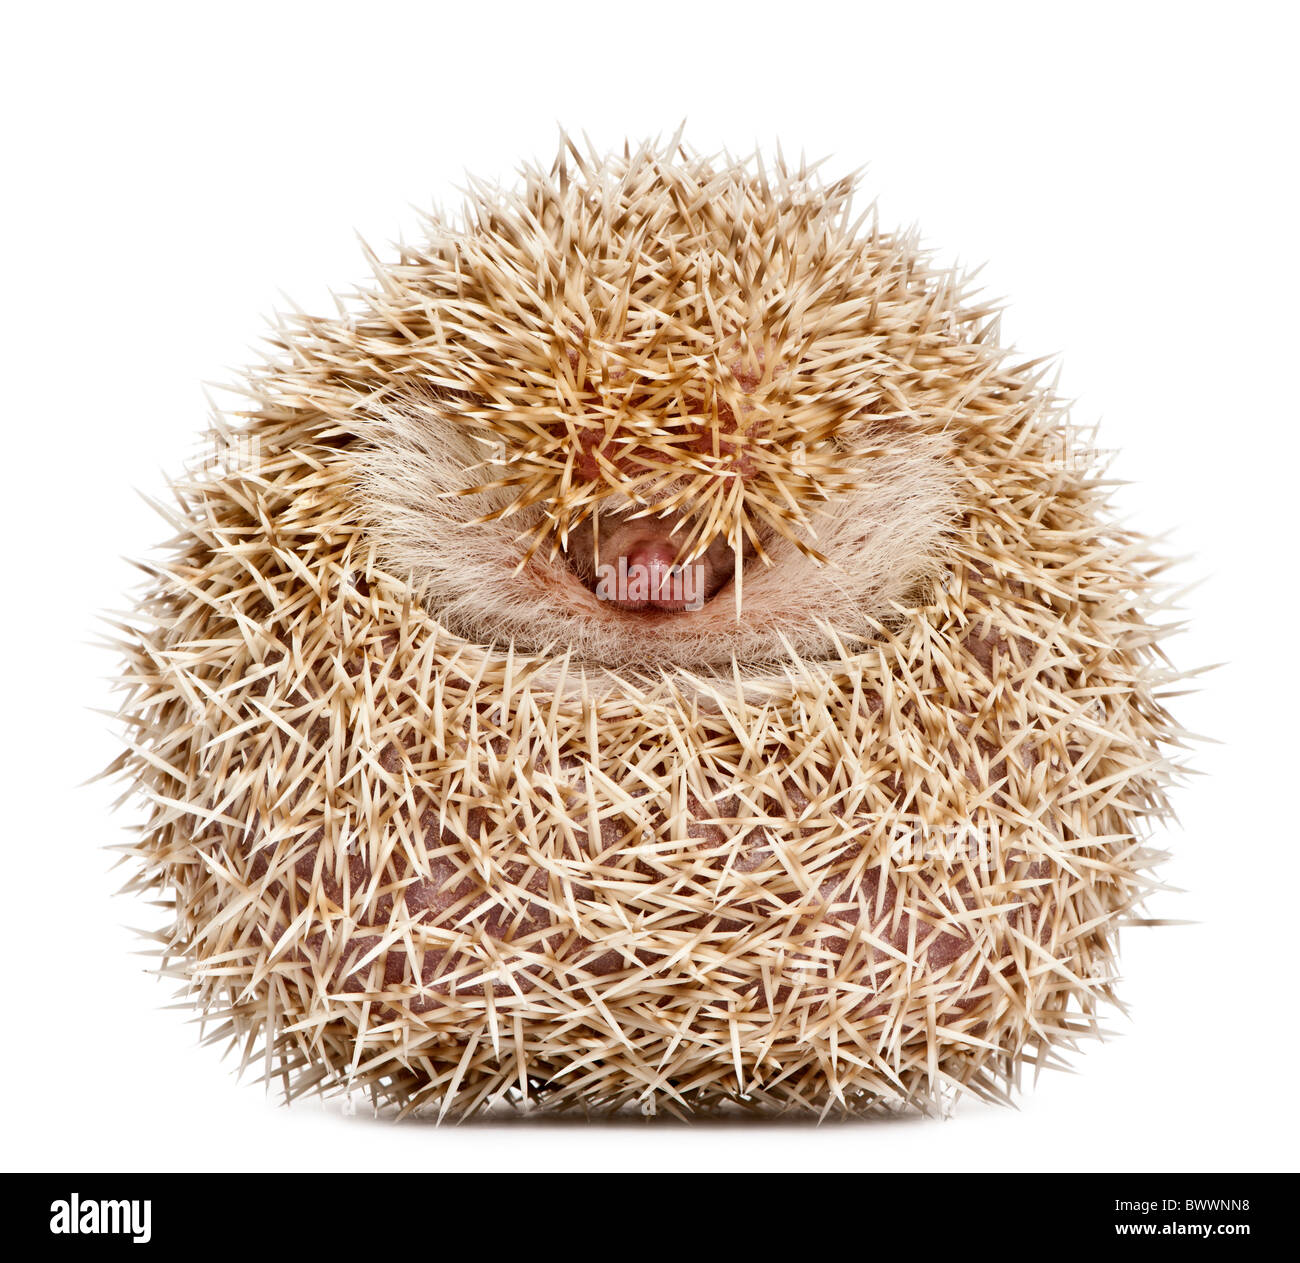 Quatre-toed Hedgehog, Atelerix albiventris, 2 ans, balled up in front of white background Photo Stock